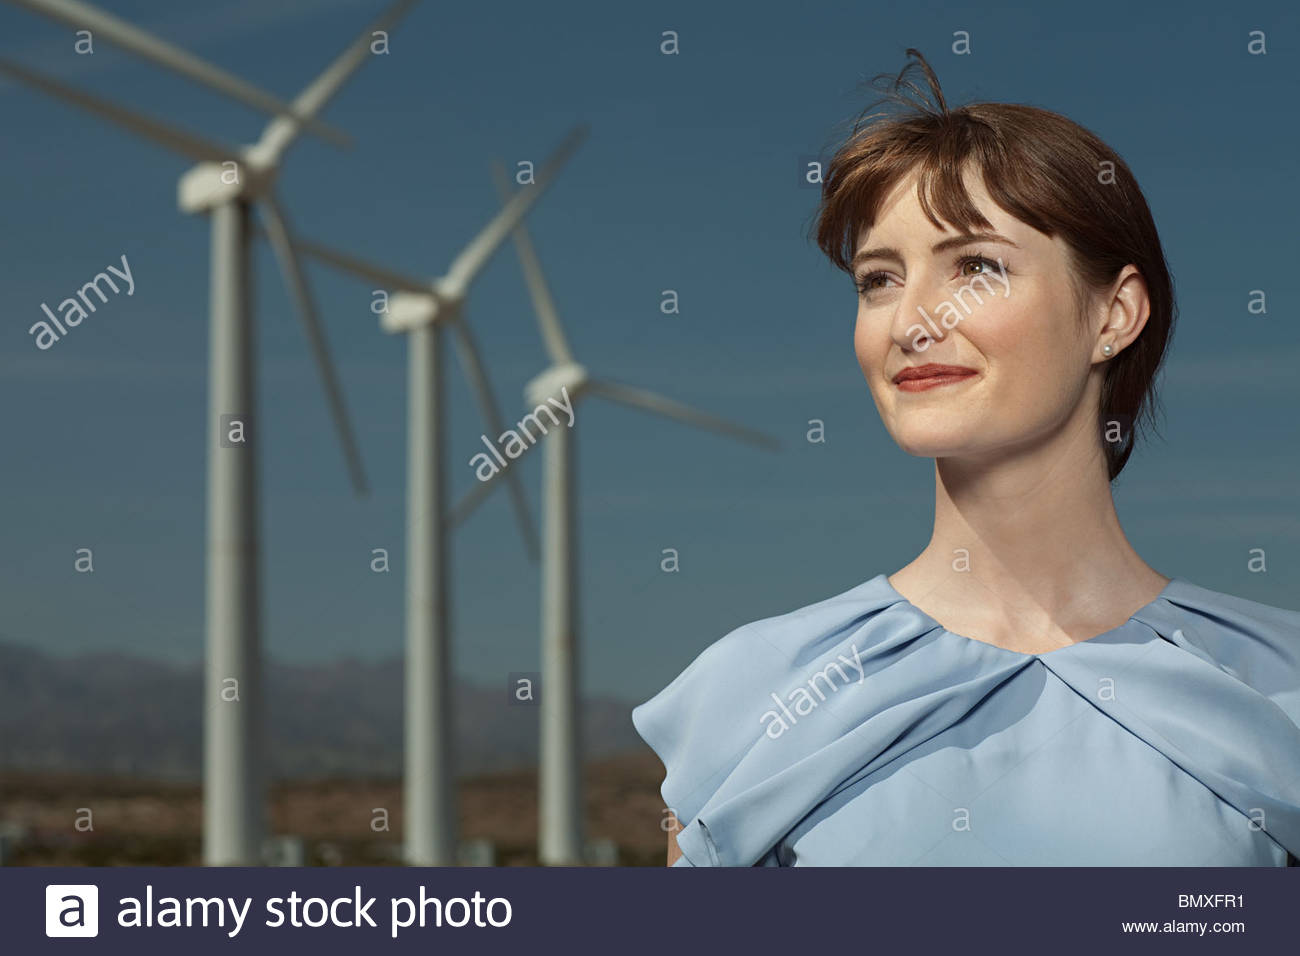 Woman and wind turbines - Stock Image